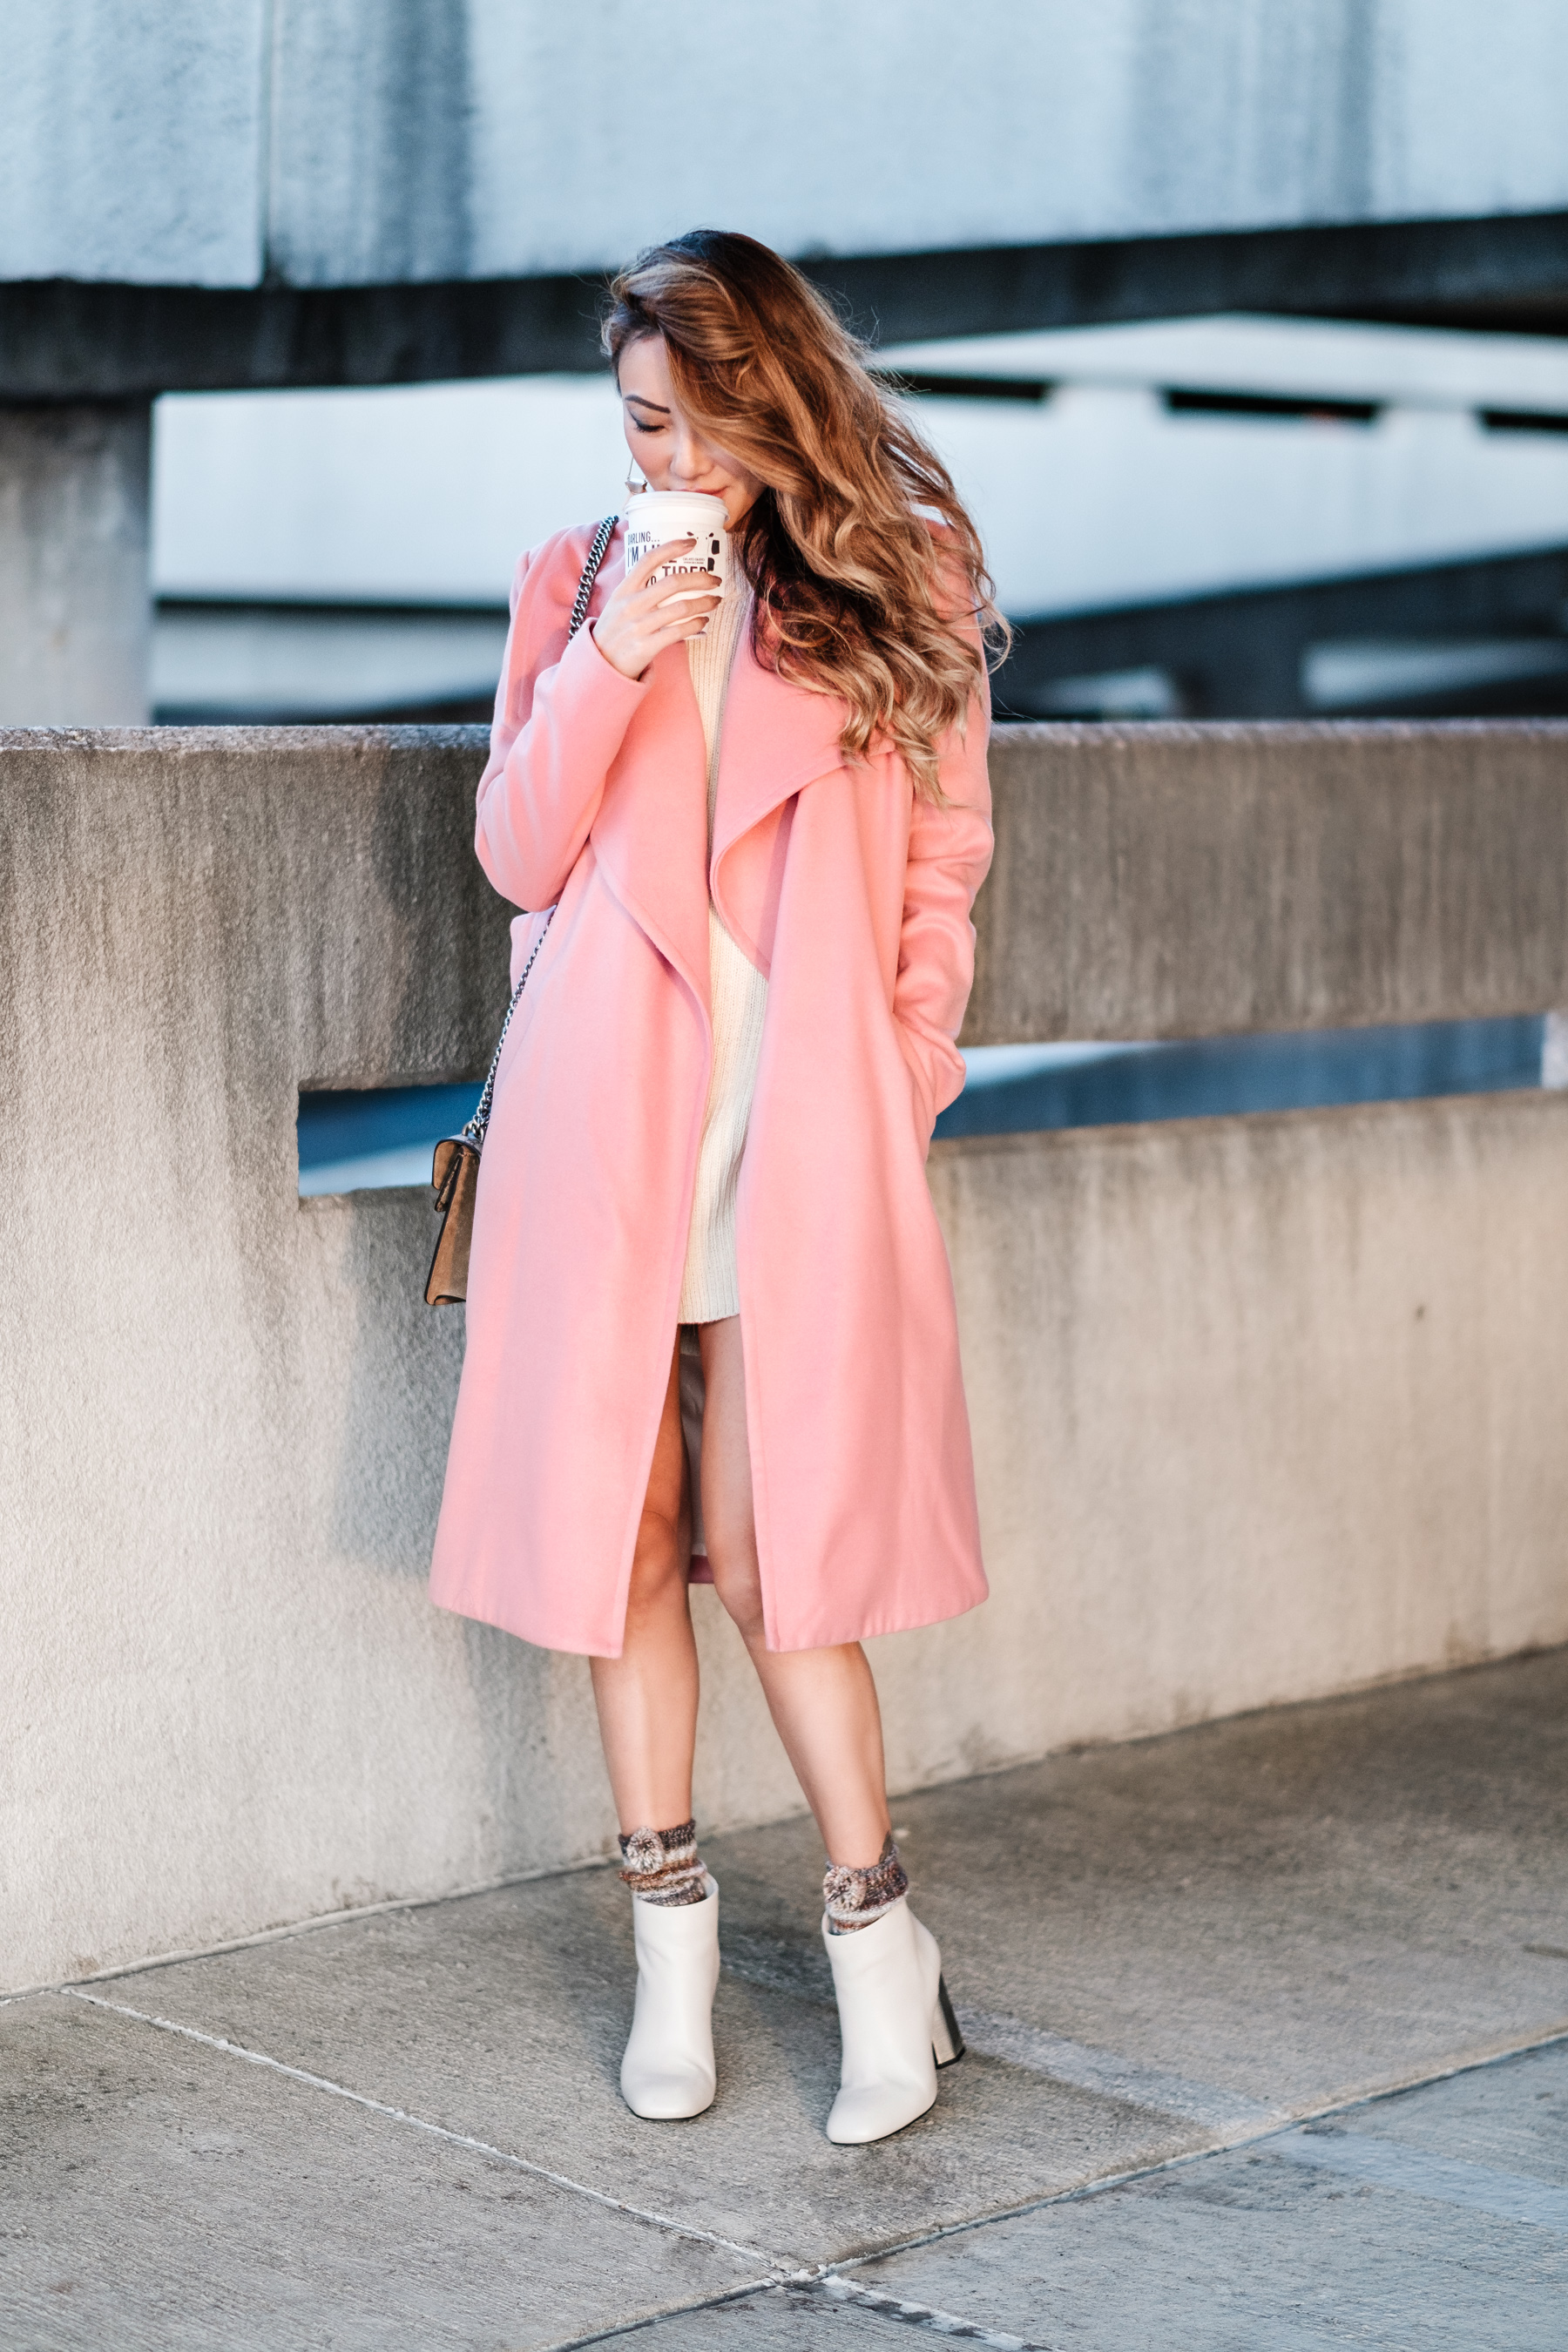 Chic Colorful Coats - Pink Coat with White Booties // NotJessFashion.com